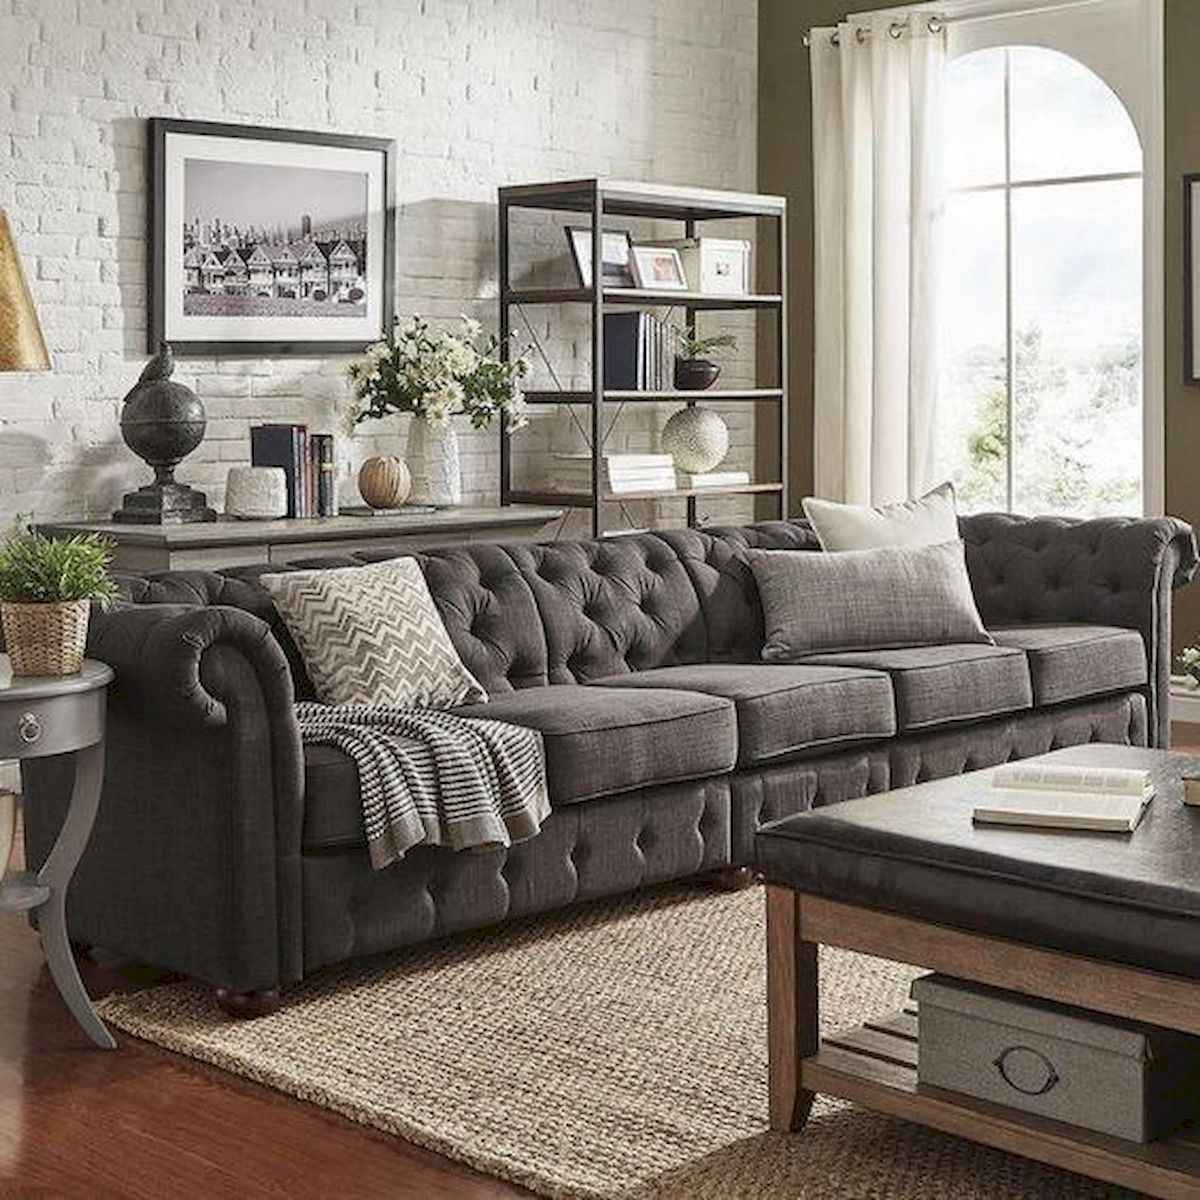 70 Stunning Grey White Black Living Room Decor Ideas And Remodel (66)